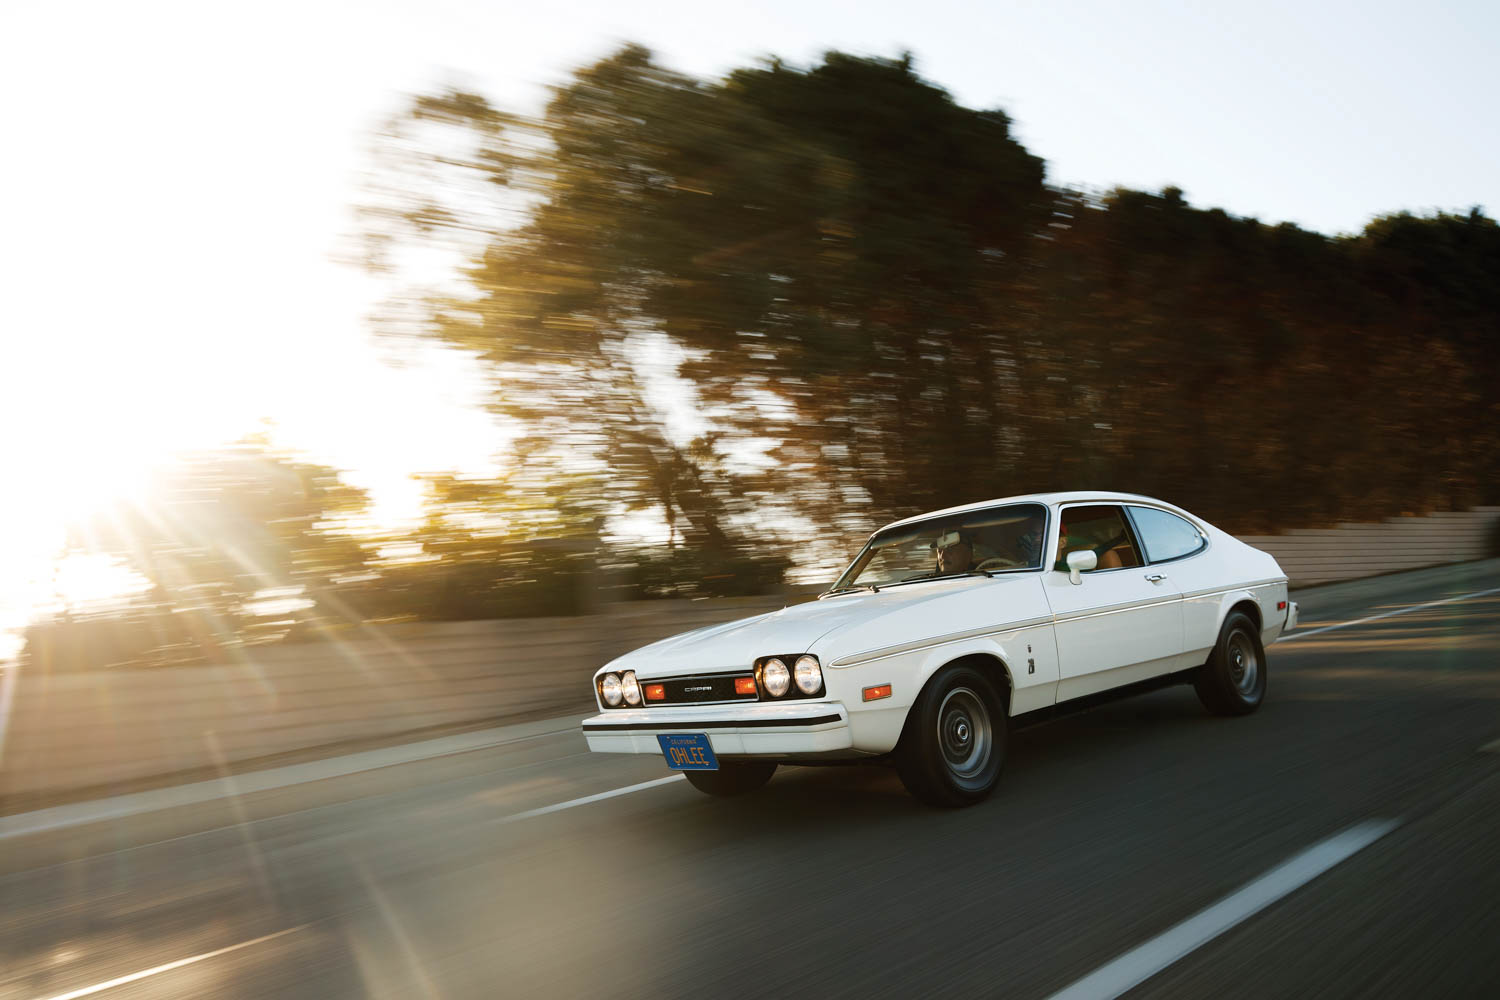 Eventually, the exchange rate killed the Germanbuilt Capri's chances in the U.S., but the Fox body was just around the corner, and the larger, more modern platform would usher in a new Capri, this time with real Mercury badging.